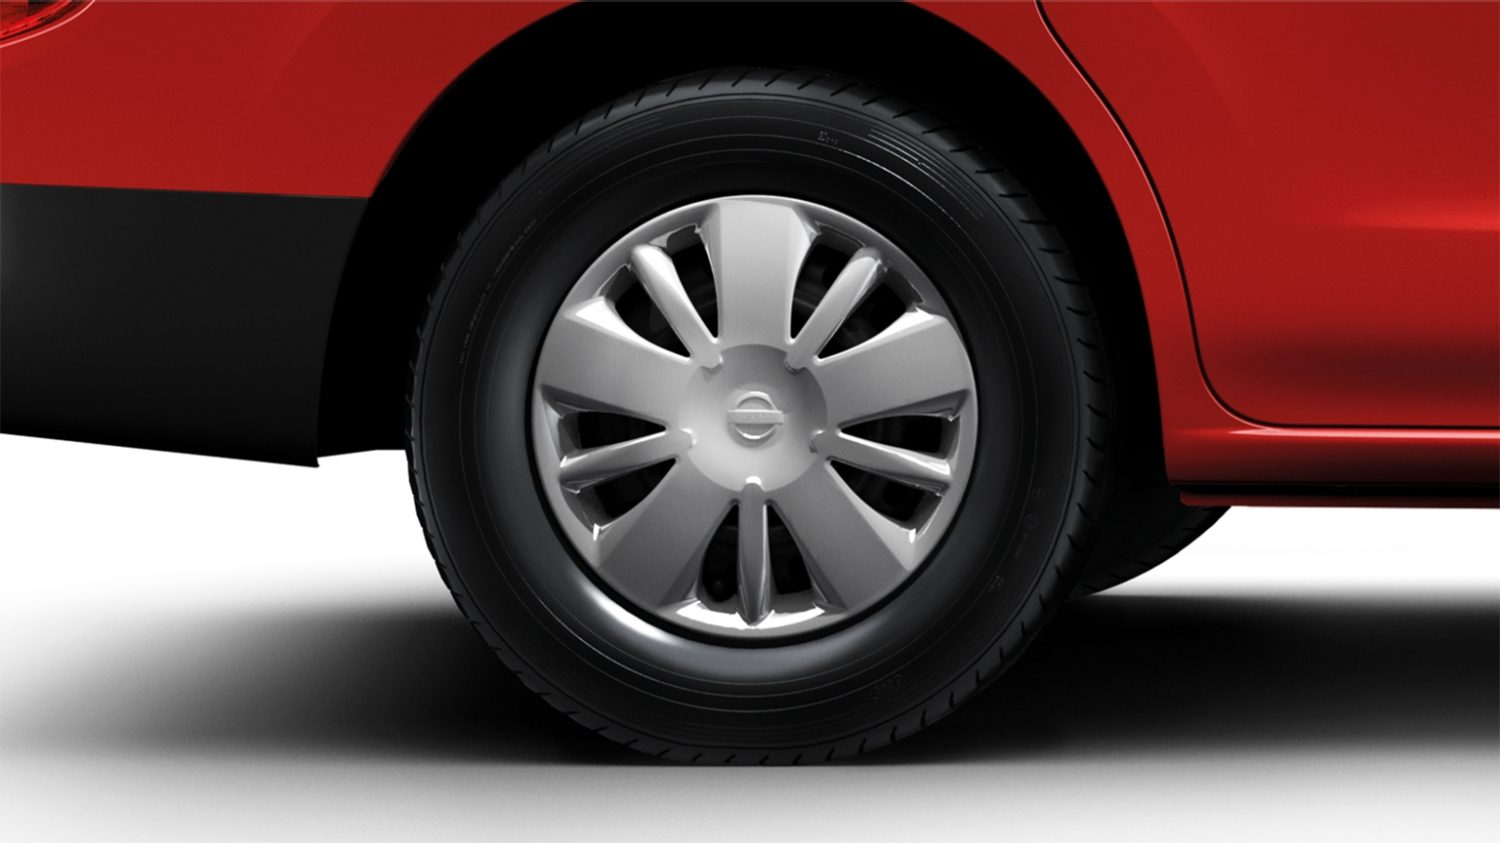 Nissan NV200 - OE wheel cover